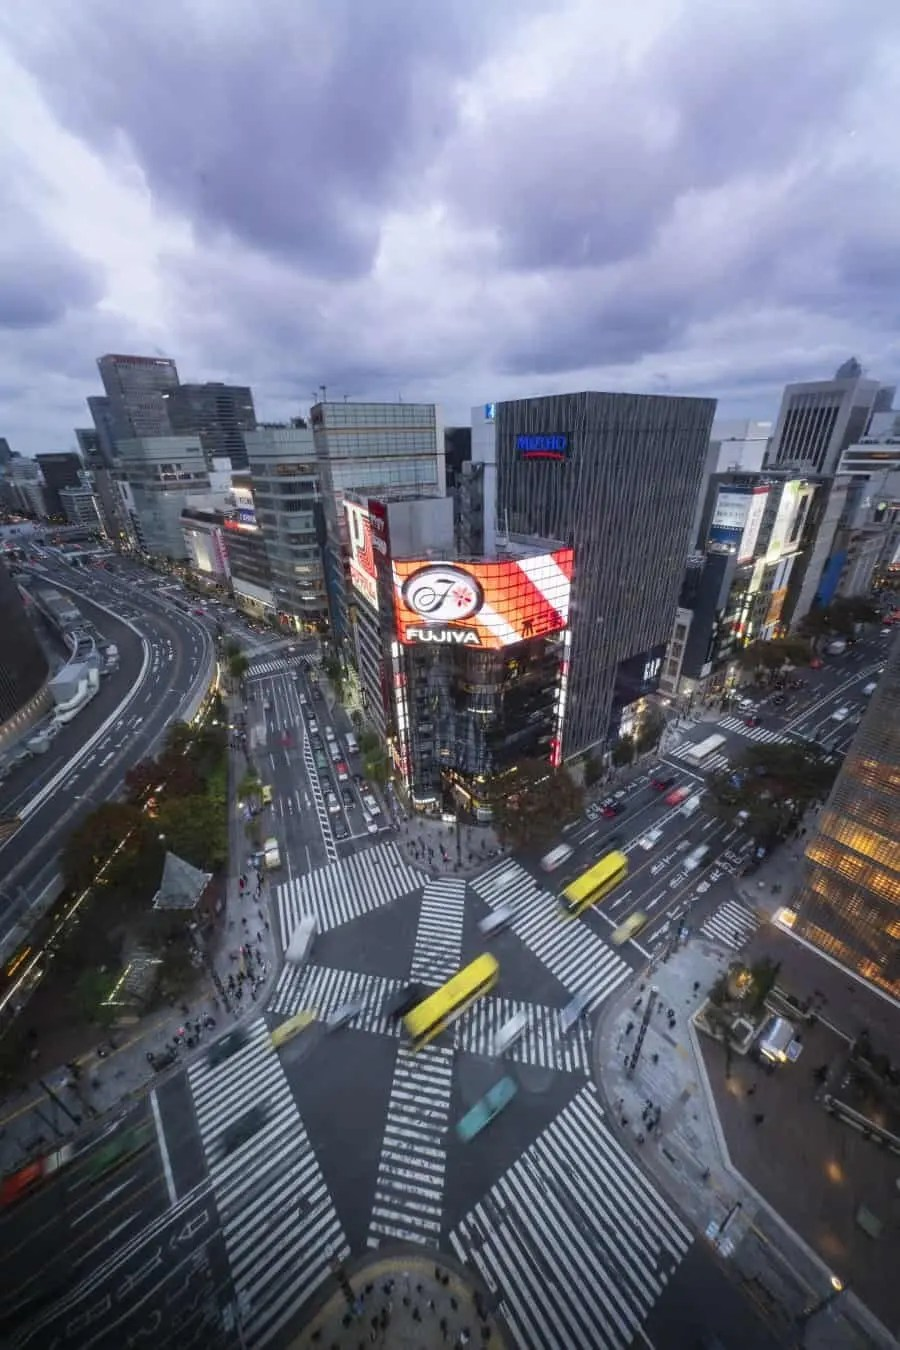 Tokyu Plaza Ginza, Tokyo Photography Locations - A Photographer's Guide to Photo Spots in Tokyo